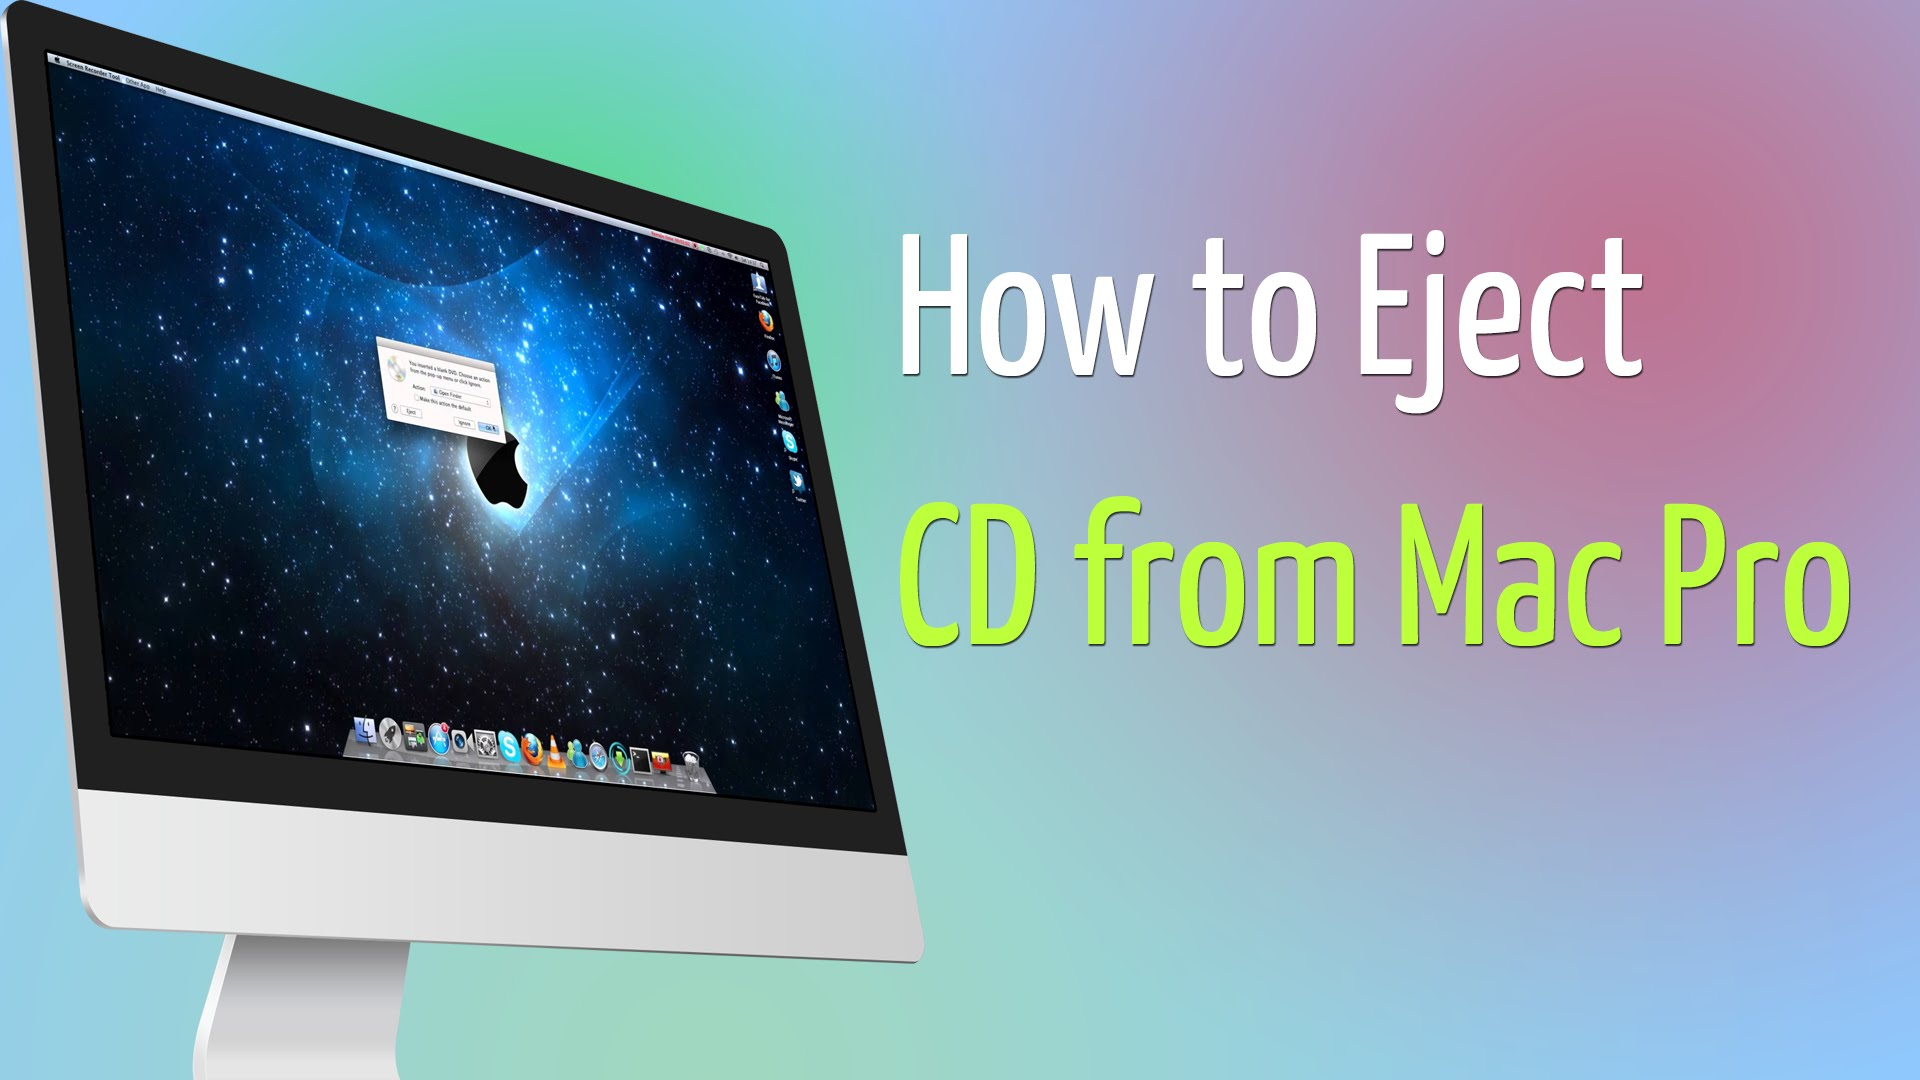 eject cd from mac